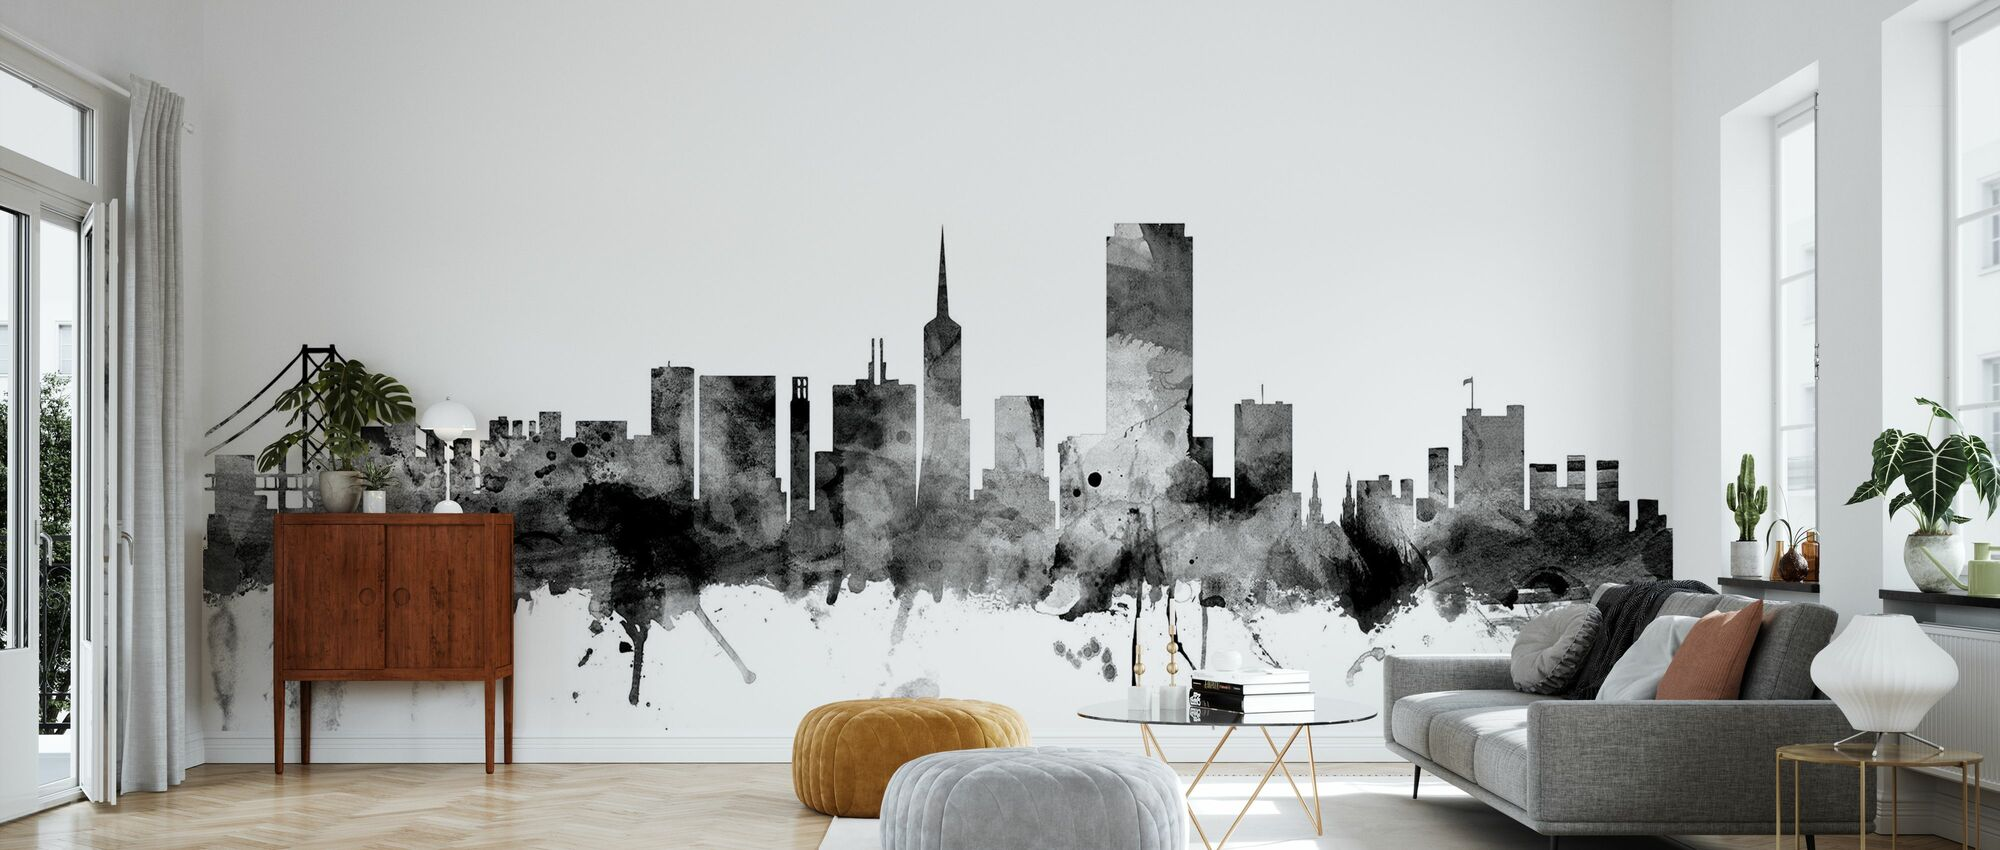 San Francisco Skyline Black - Wallpaper - Living Room